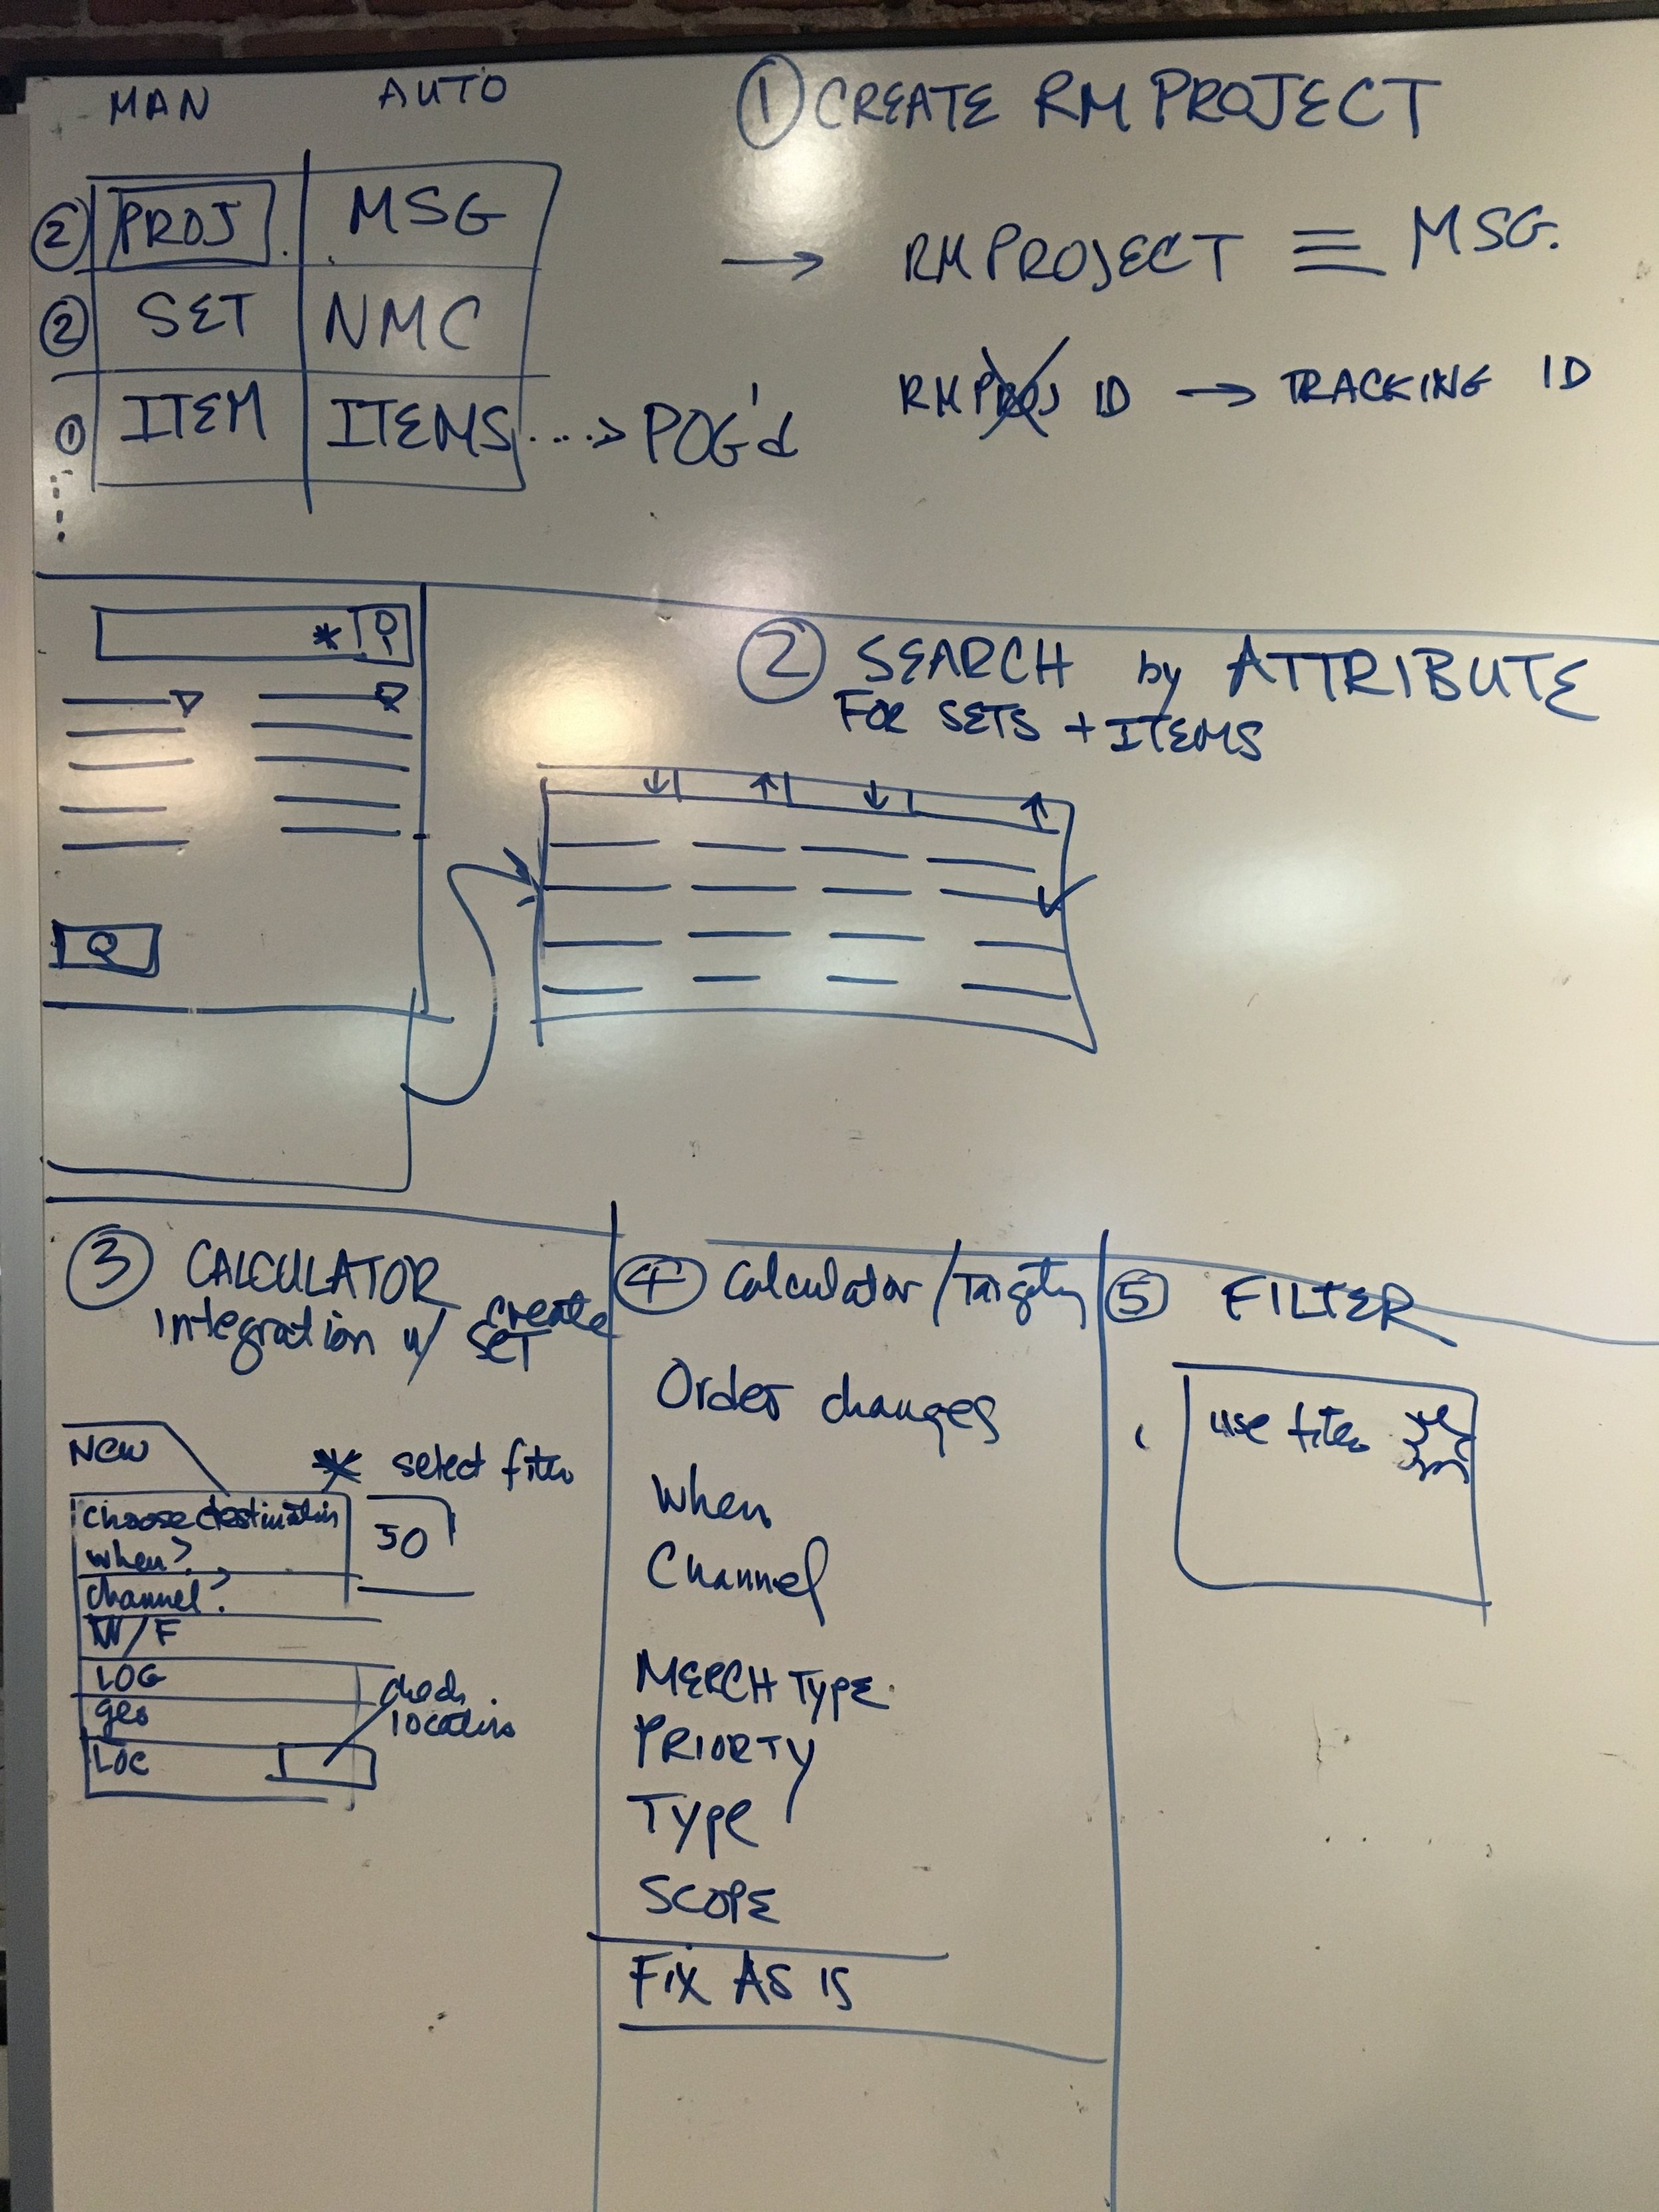 Sketching out user workflow on whiteboard with client